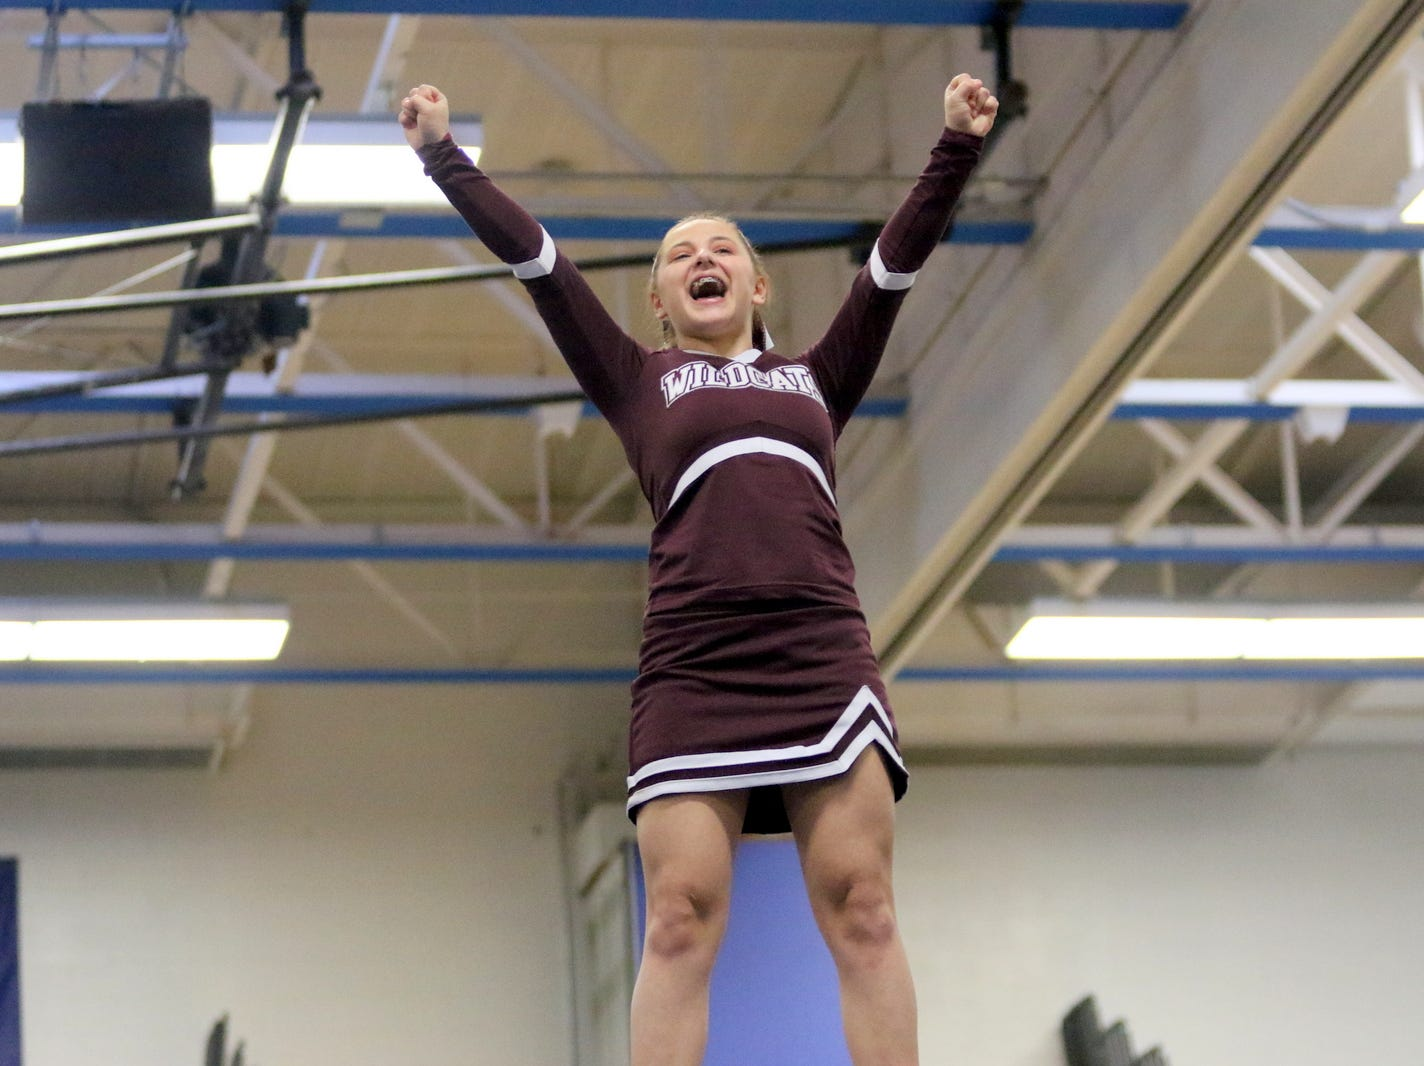 Johnson City junior varsity cheerleaders compete at the STAC Winter Cheer Championships on Feb. 16, 2019 at Horseheads Middle School.